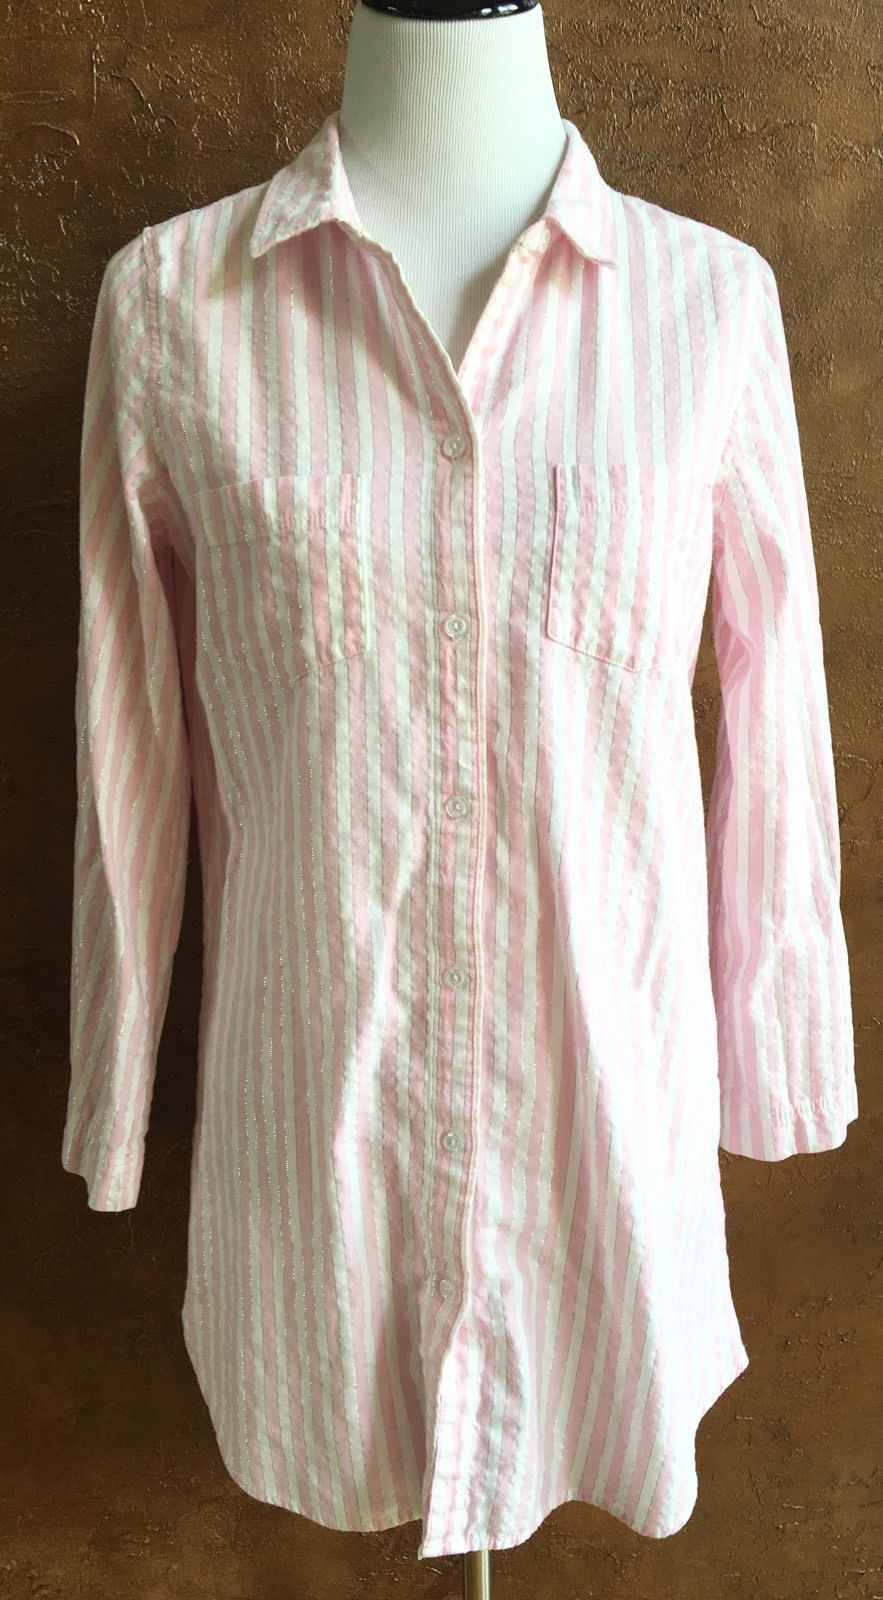 c7c94d7662ecb Victoria's Secret - Pink White Striped Sleep and 26 similar items